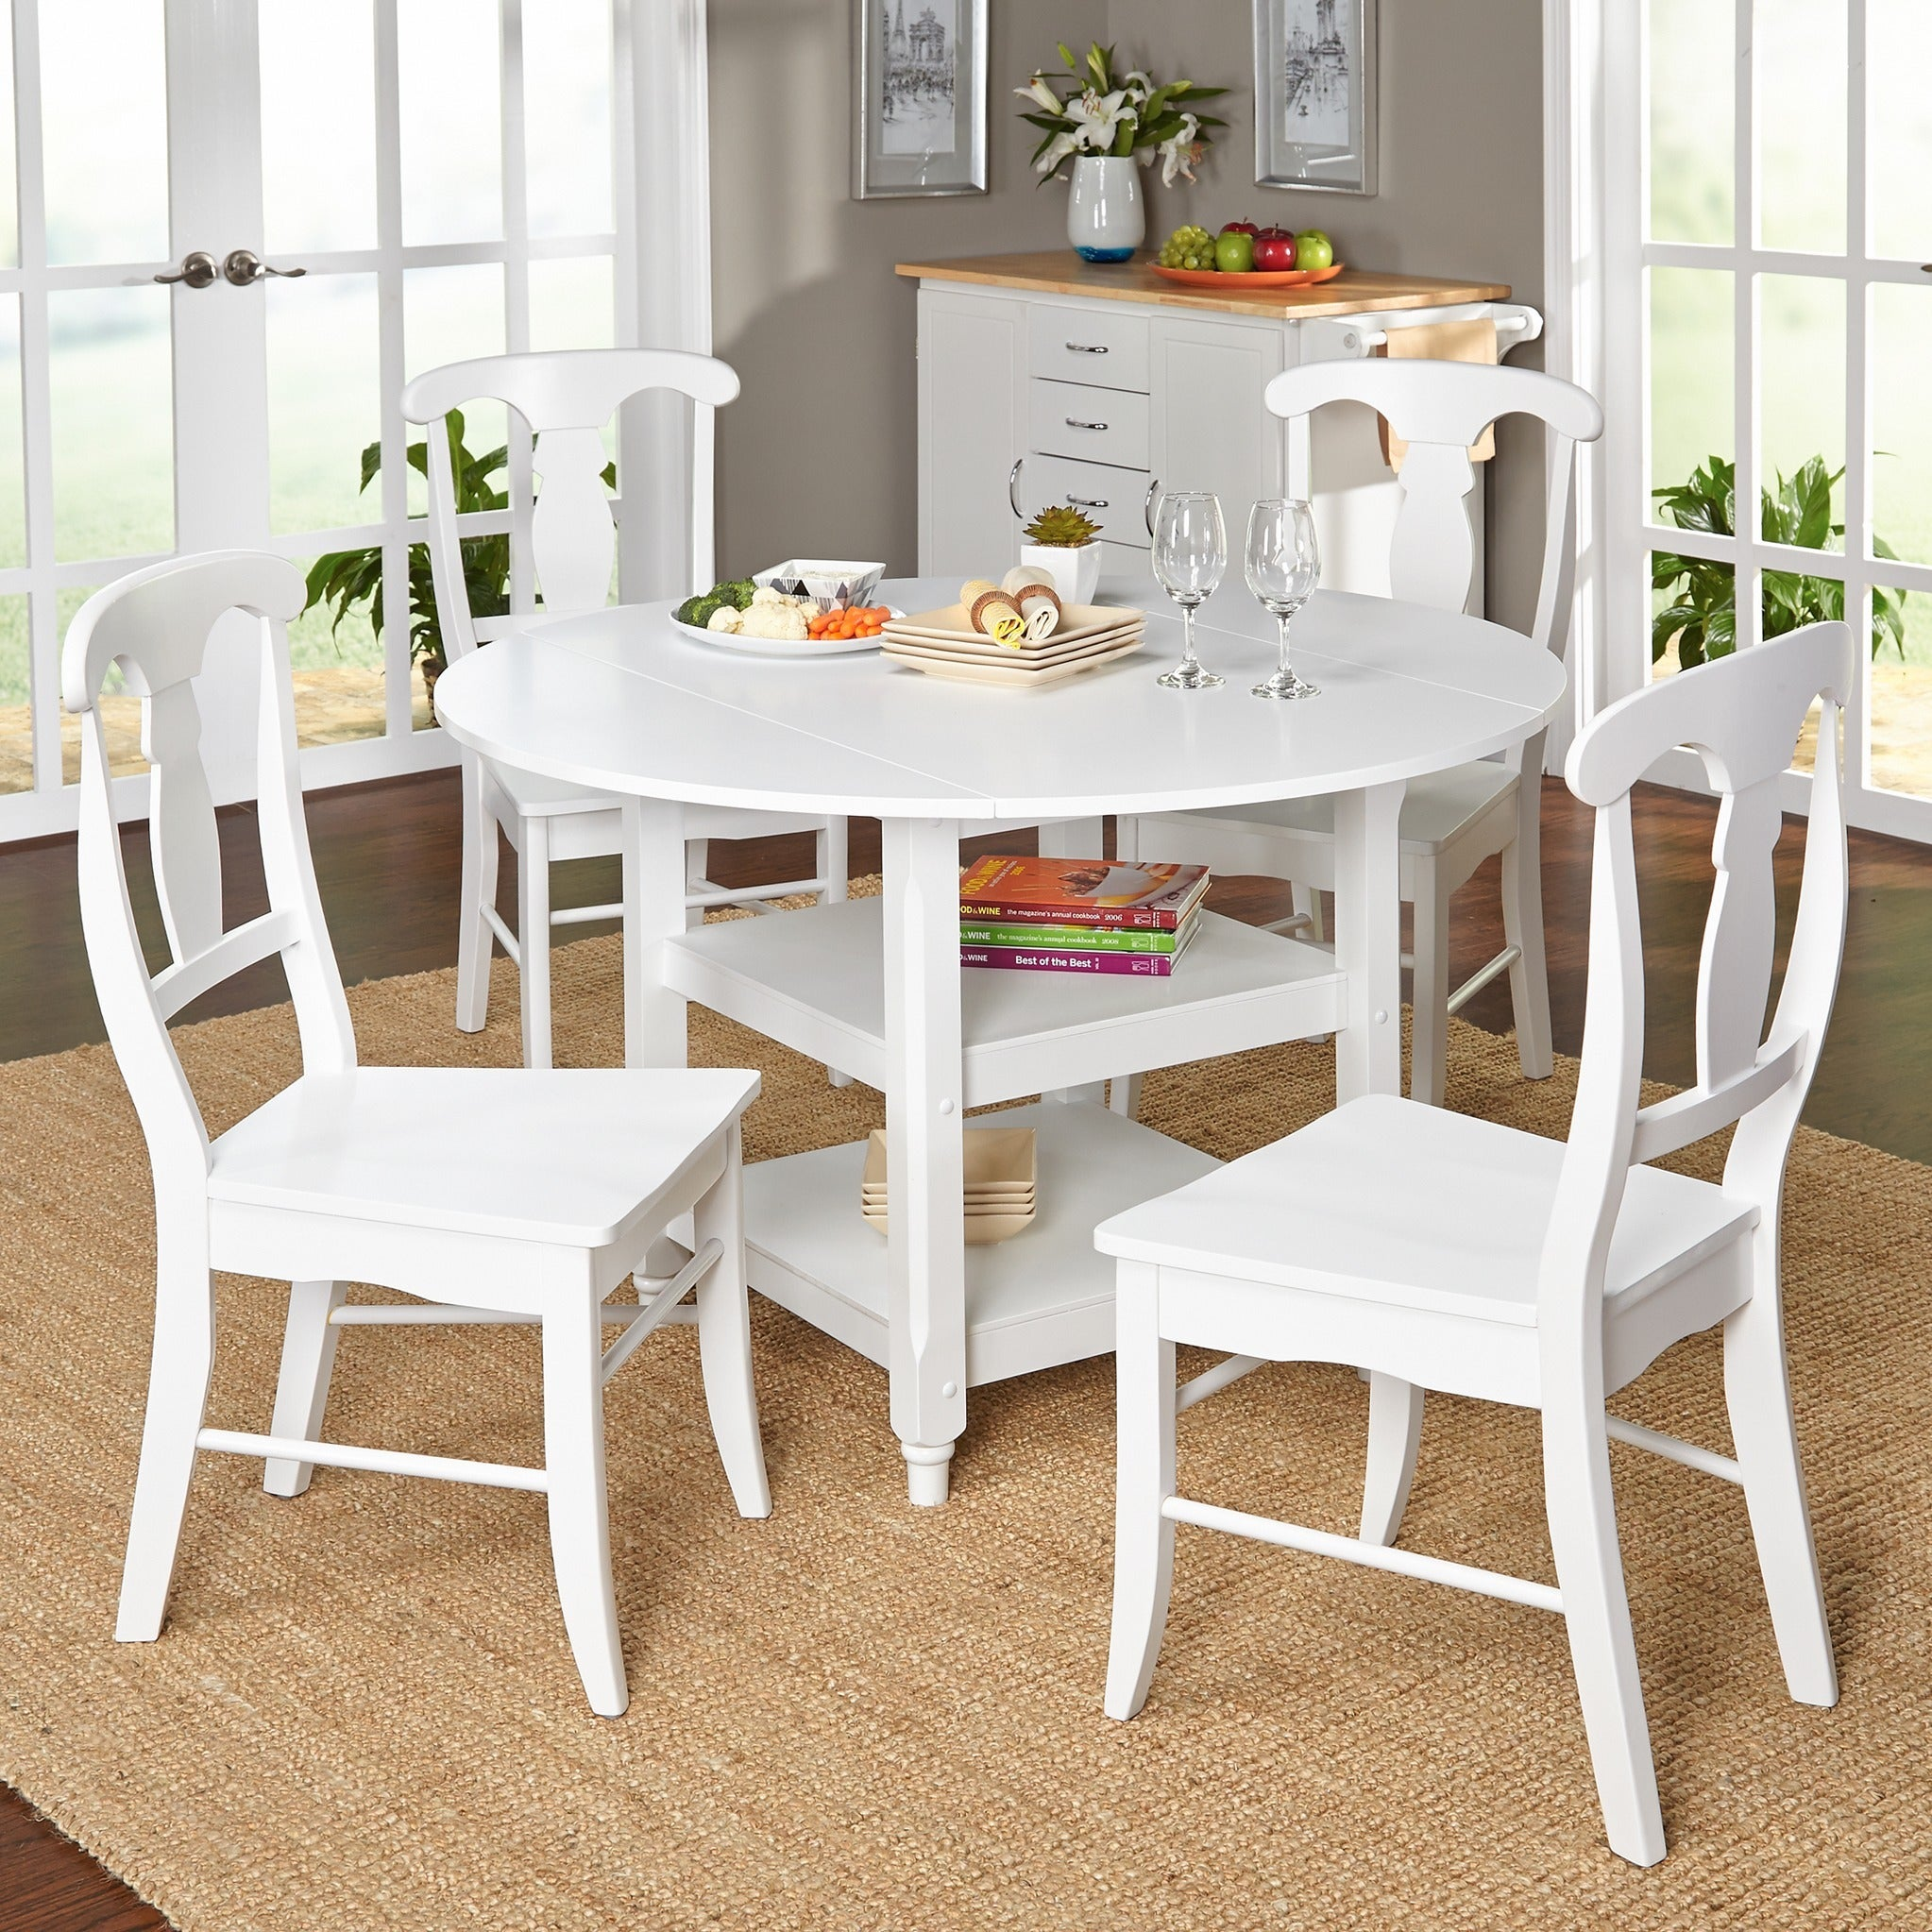 Simple Living Cottage 5-piece Dining Set, White, Size 5-P...